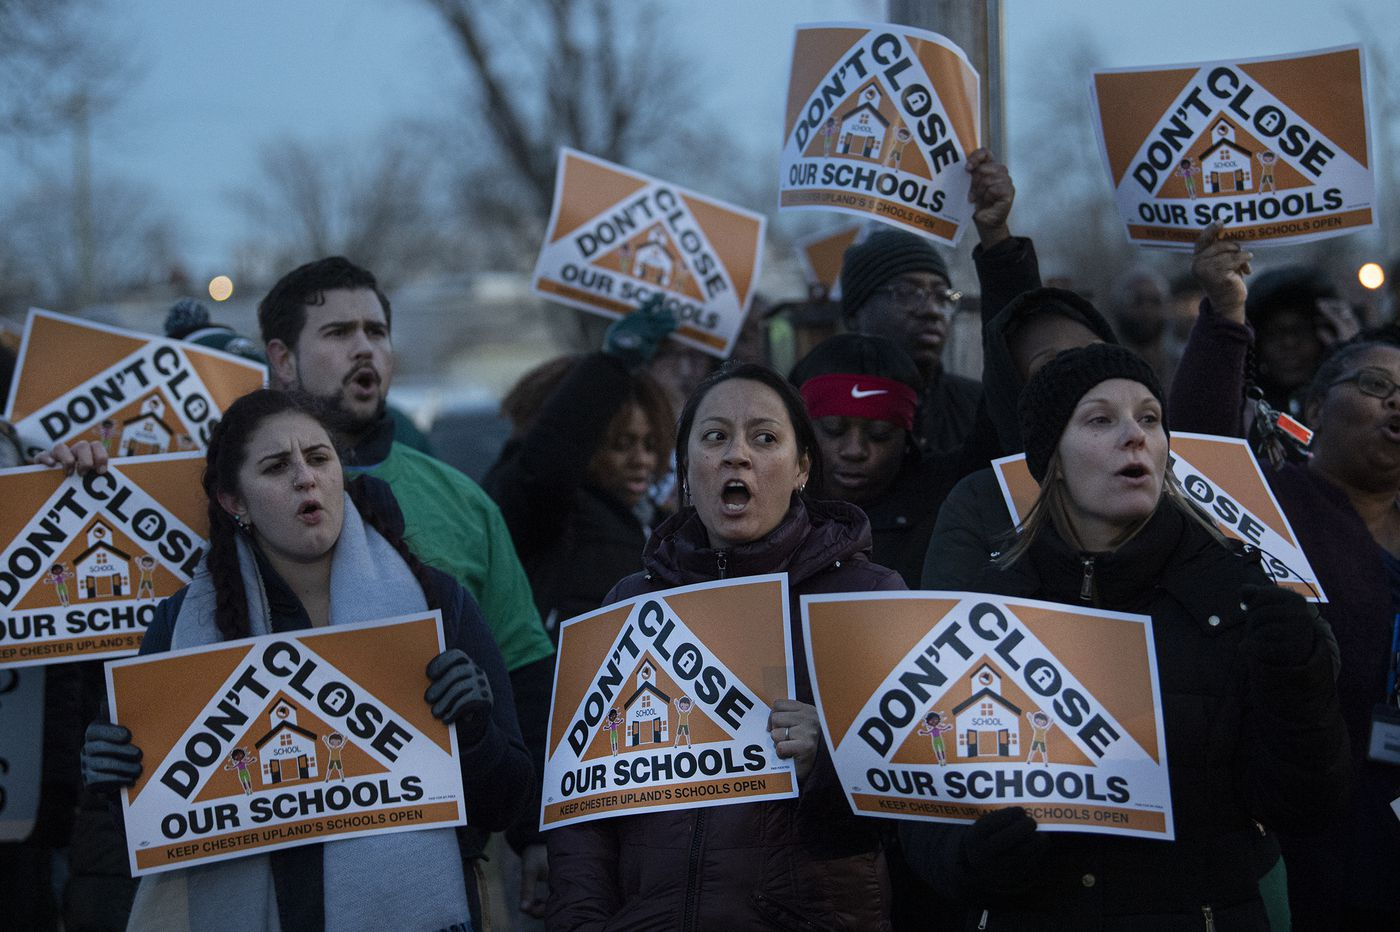 Judge says Chester Upland can consider possible takeover by charter schools